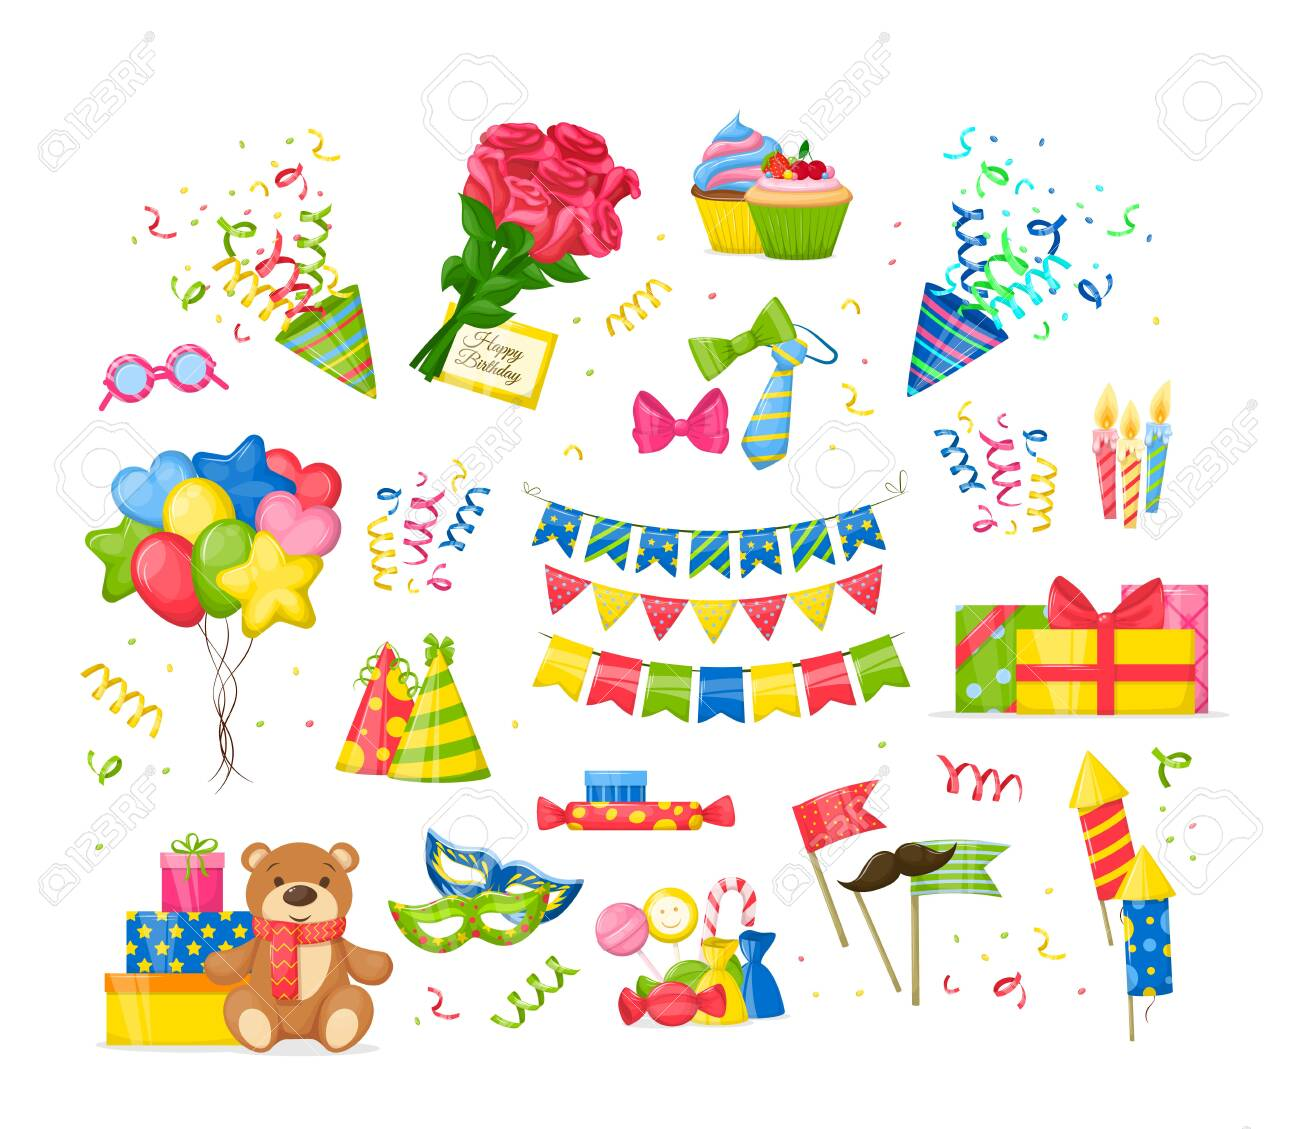 Celebration Birthday party decorations set. Happy birthday party symbols gift, cupcakes, cake, garlands, festive candles burning, ties, bows, toys, bouquet of roses, envelope cartoon isolated vector - 139470437